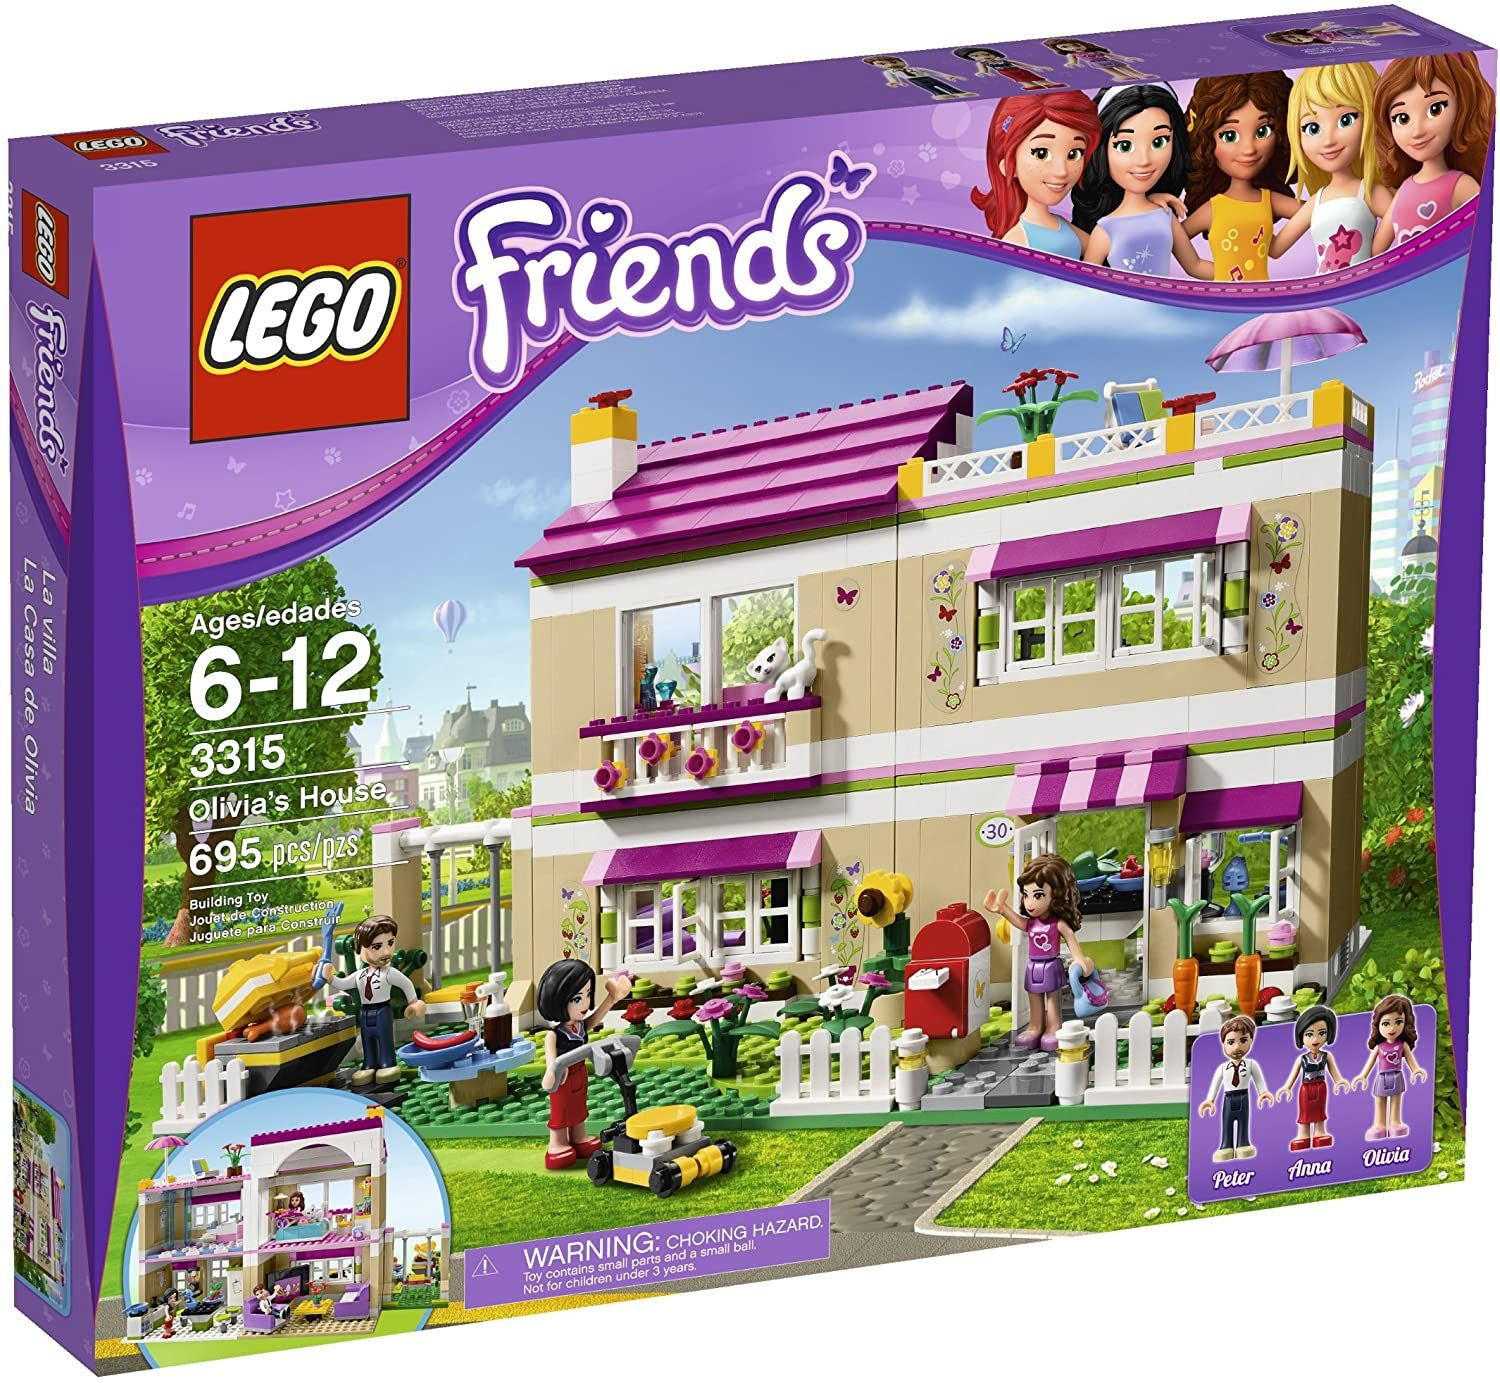 Lego Friends Olivias House 3315 Discontinued By Lego Friends Sets Lego Friends Building Toys